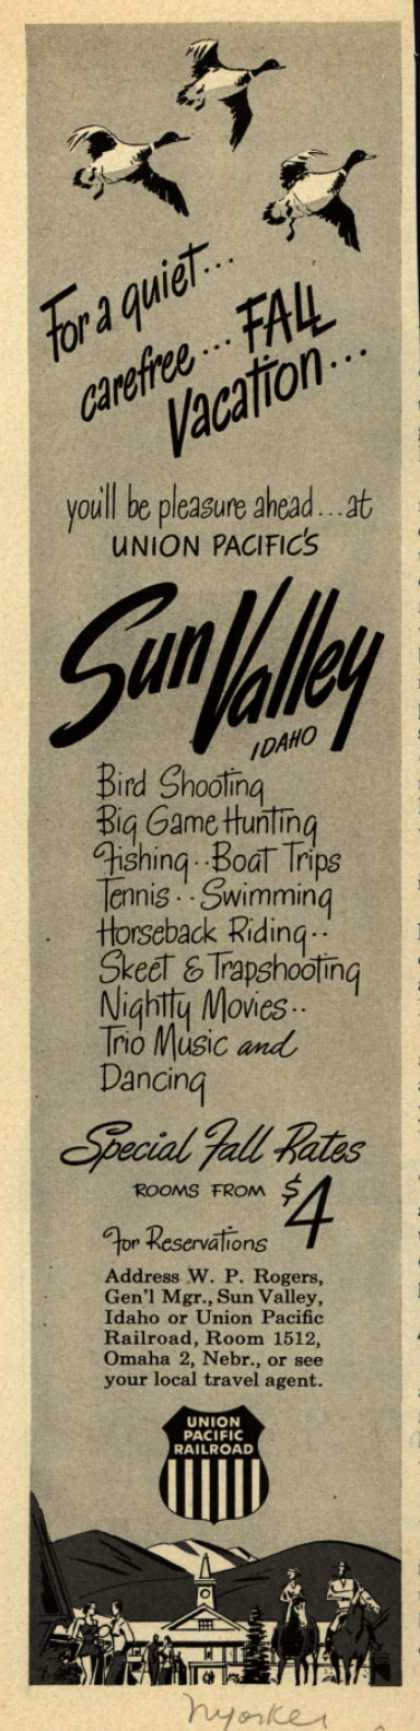 Union Pacific Railroad's Sun Valley, Idaho – For a quiet...carefree...Fall Vacation... (1950)